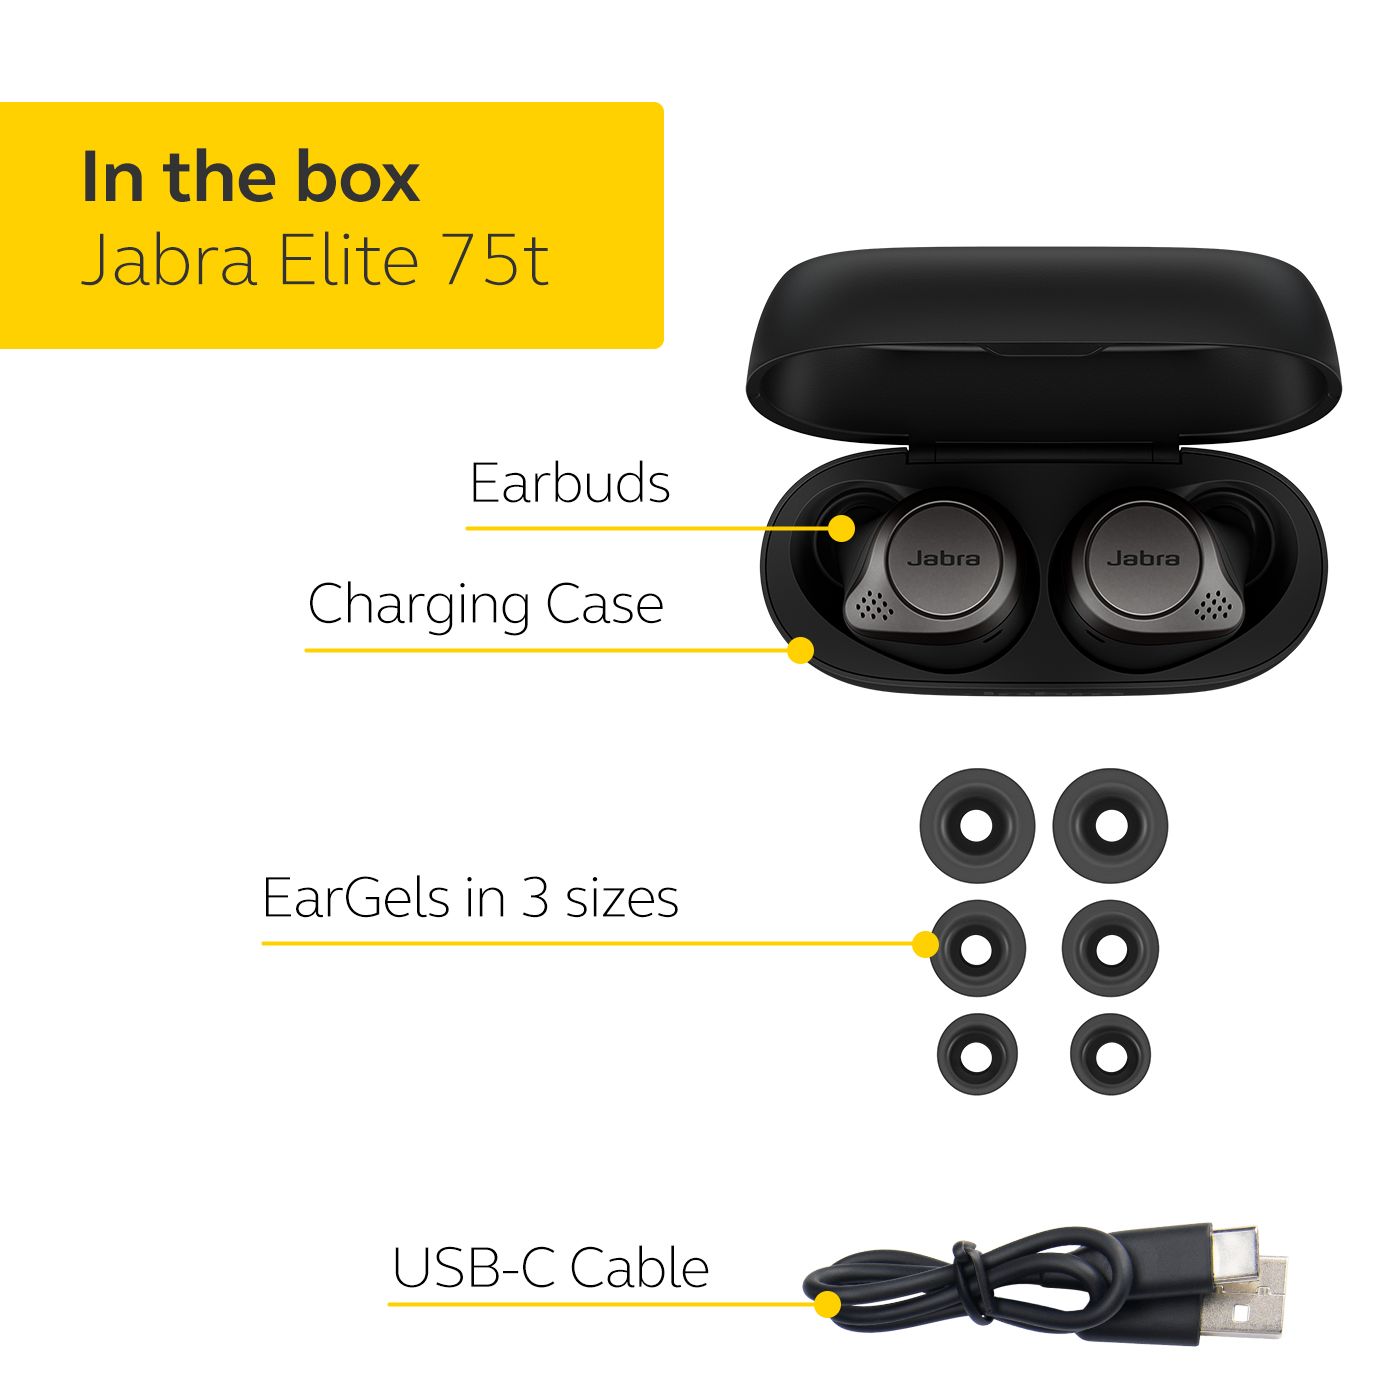 Jabra-Elite-75t-Voice-Assistant-Enabled-True-Wireless-earbuds-with-Charging-Case thumbnail 15